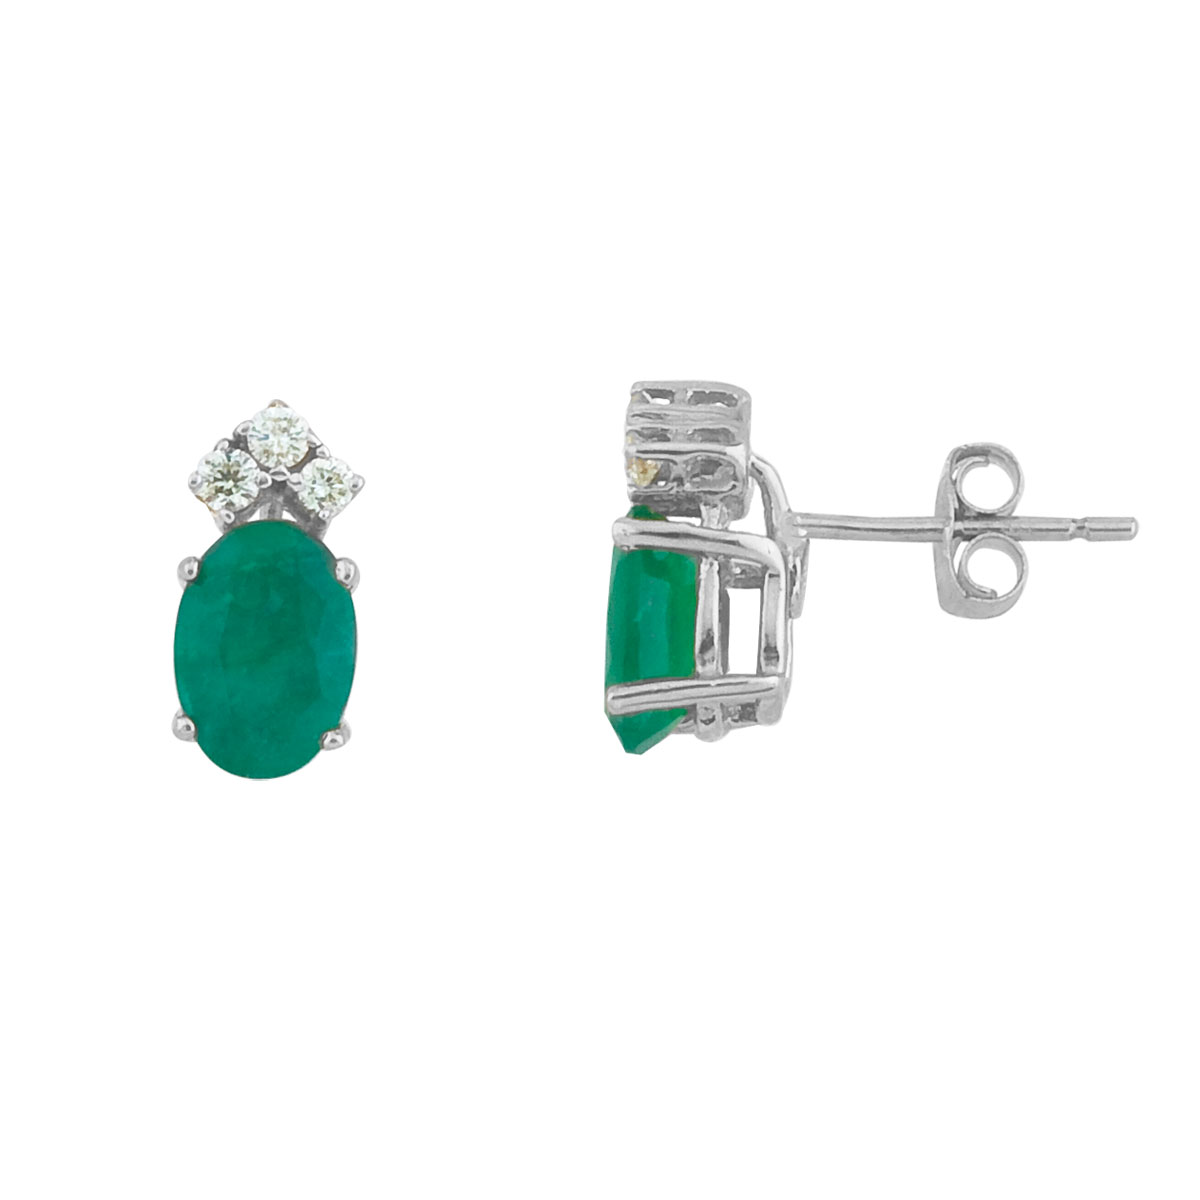 These 7x5 mm oval shaped emerald earrings are set in beautiful 14k white  gold and feature .12 to...